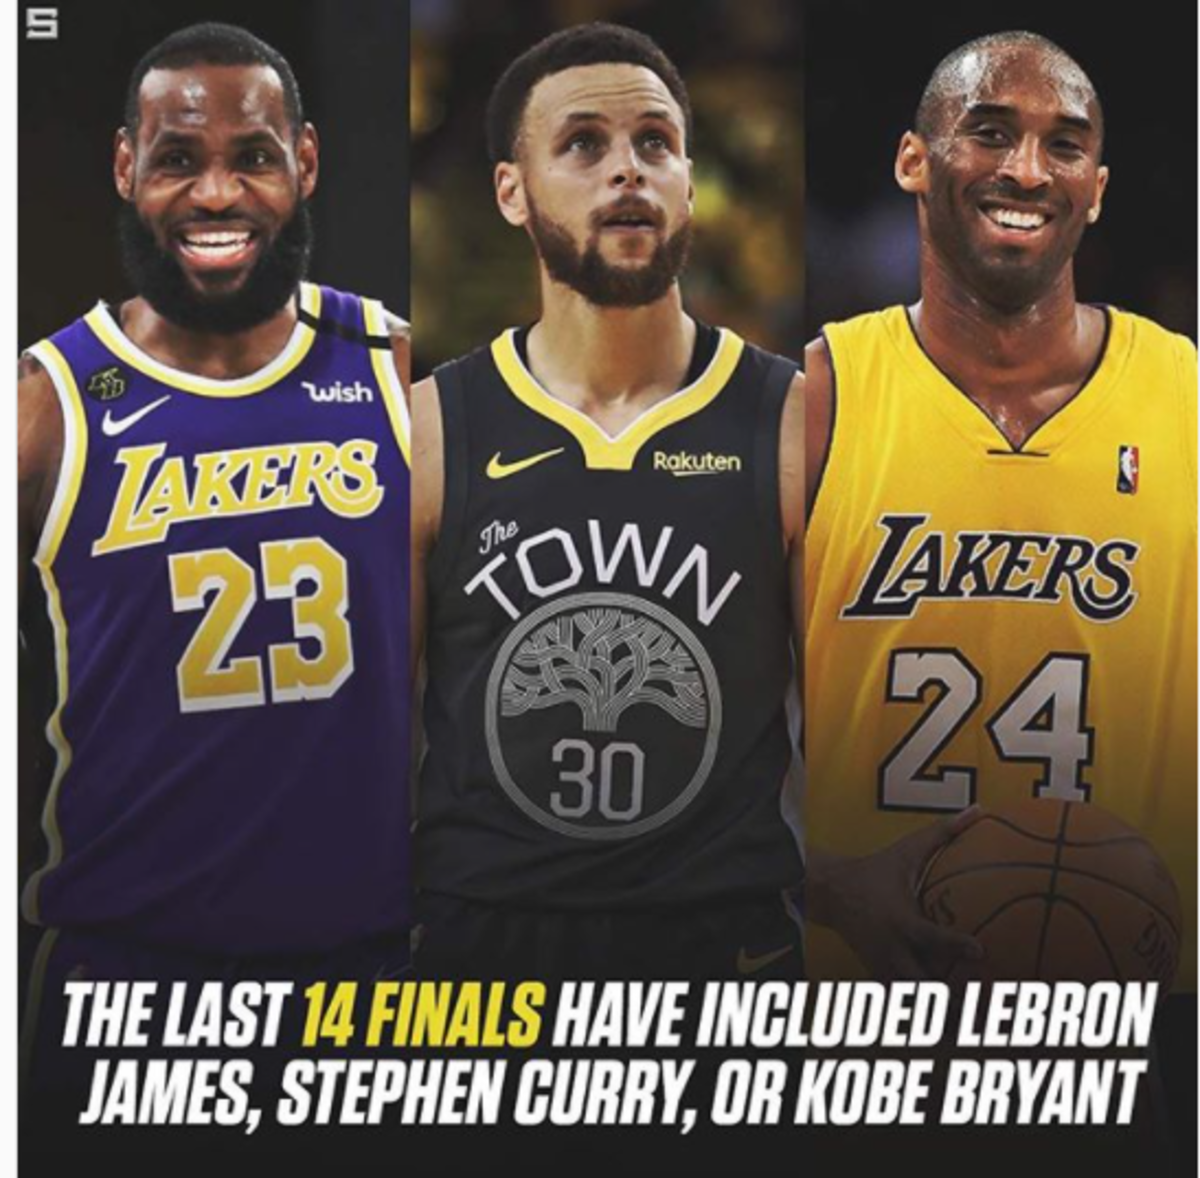 The Last 14 NBA Finals Have Included LeBron James, Stephen Curry, Or Kobe Bryant